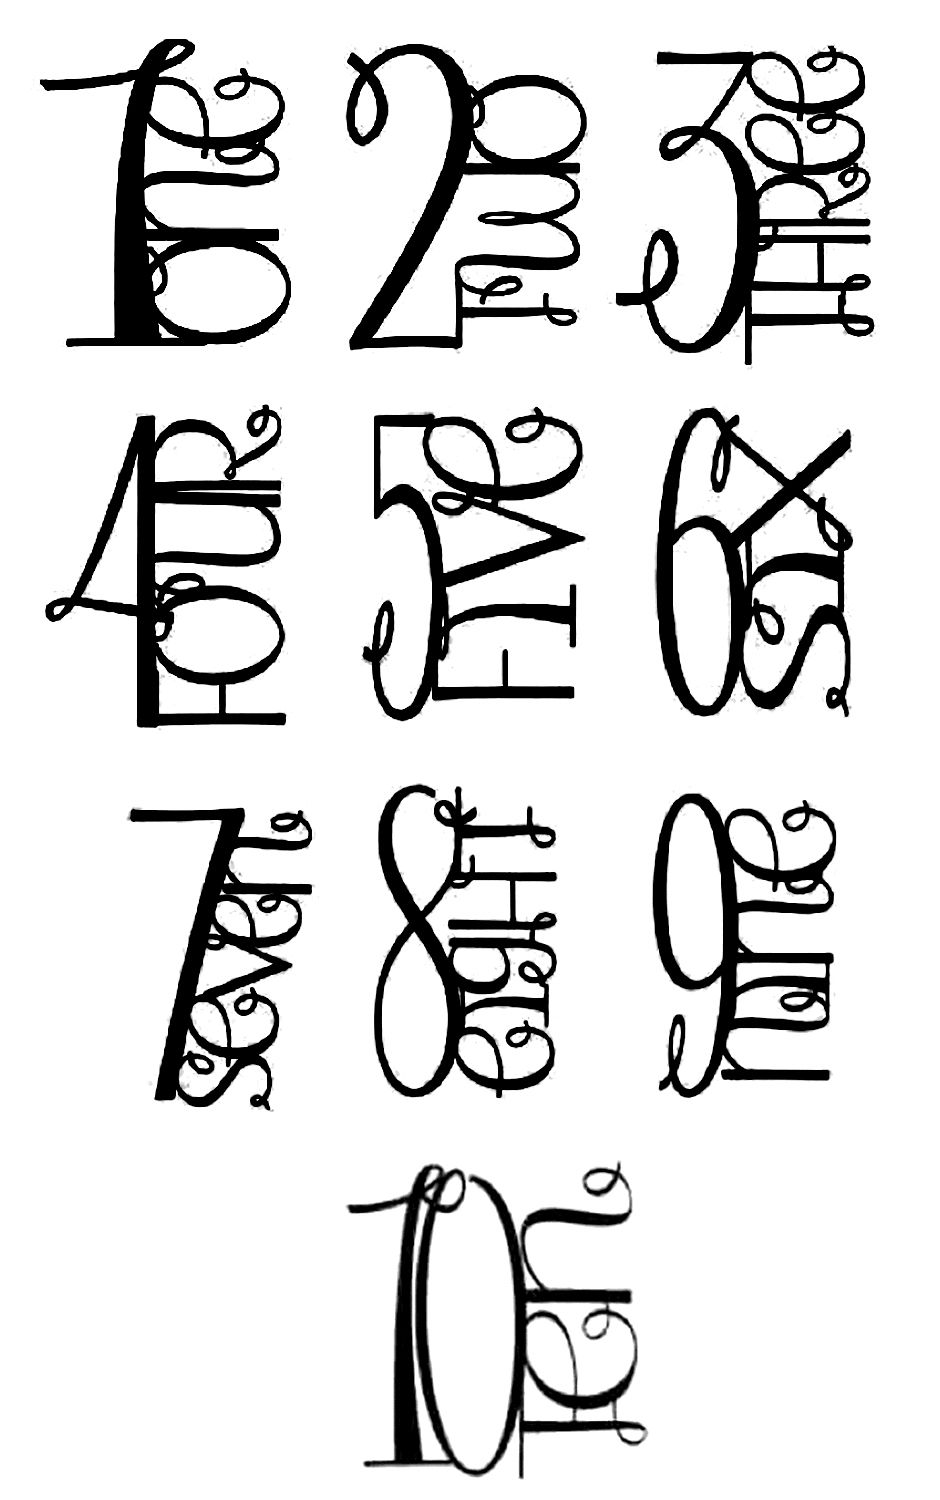 Fancy Letters And Numbers : fancy, letters, numbers, Fancy, Numbers, Letters,, Numbers,, Lettering